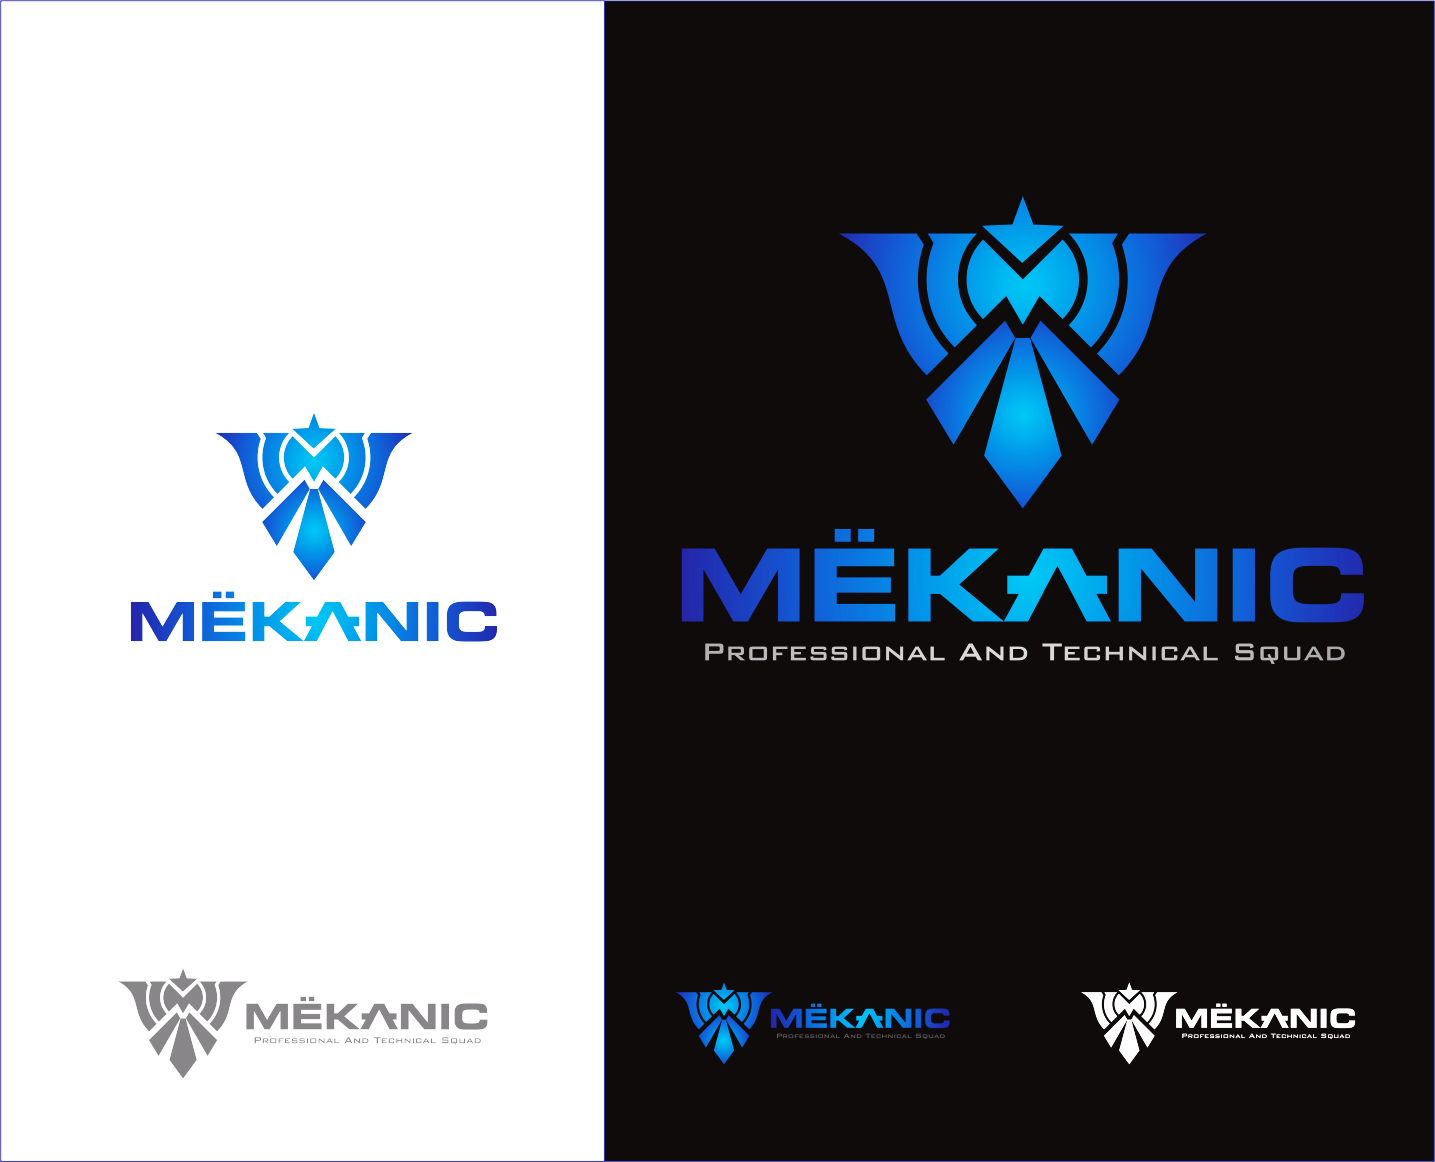 Logo Design by Armada Jamaluddin - Entry No. 279 in the Logo Design Contest Creative Logo Design for MËKANIC - Professional and technical squad.